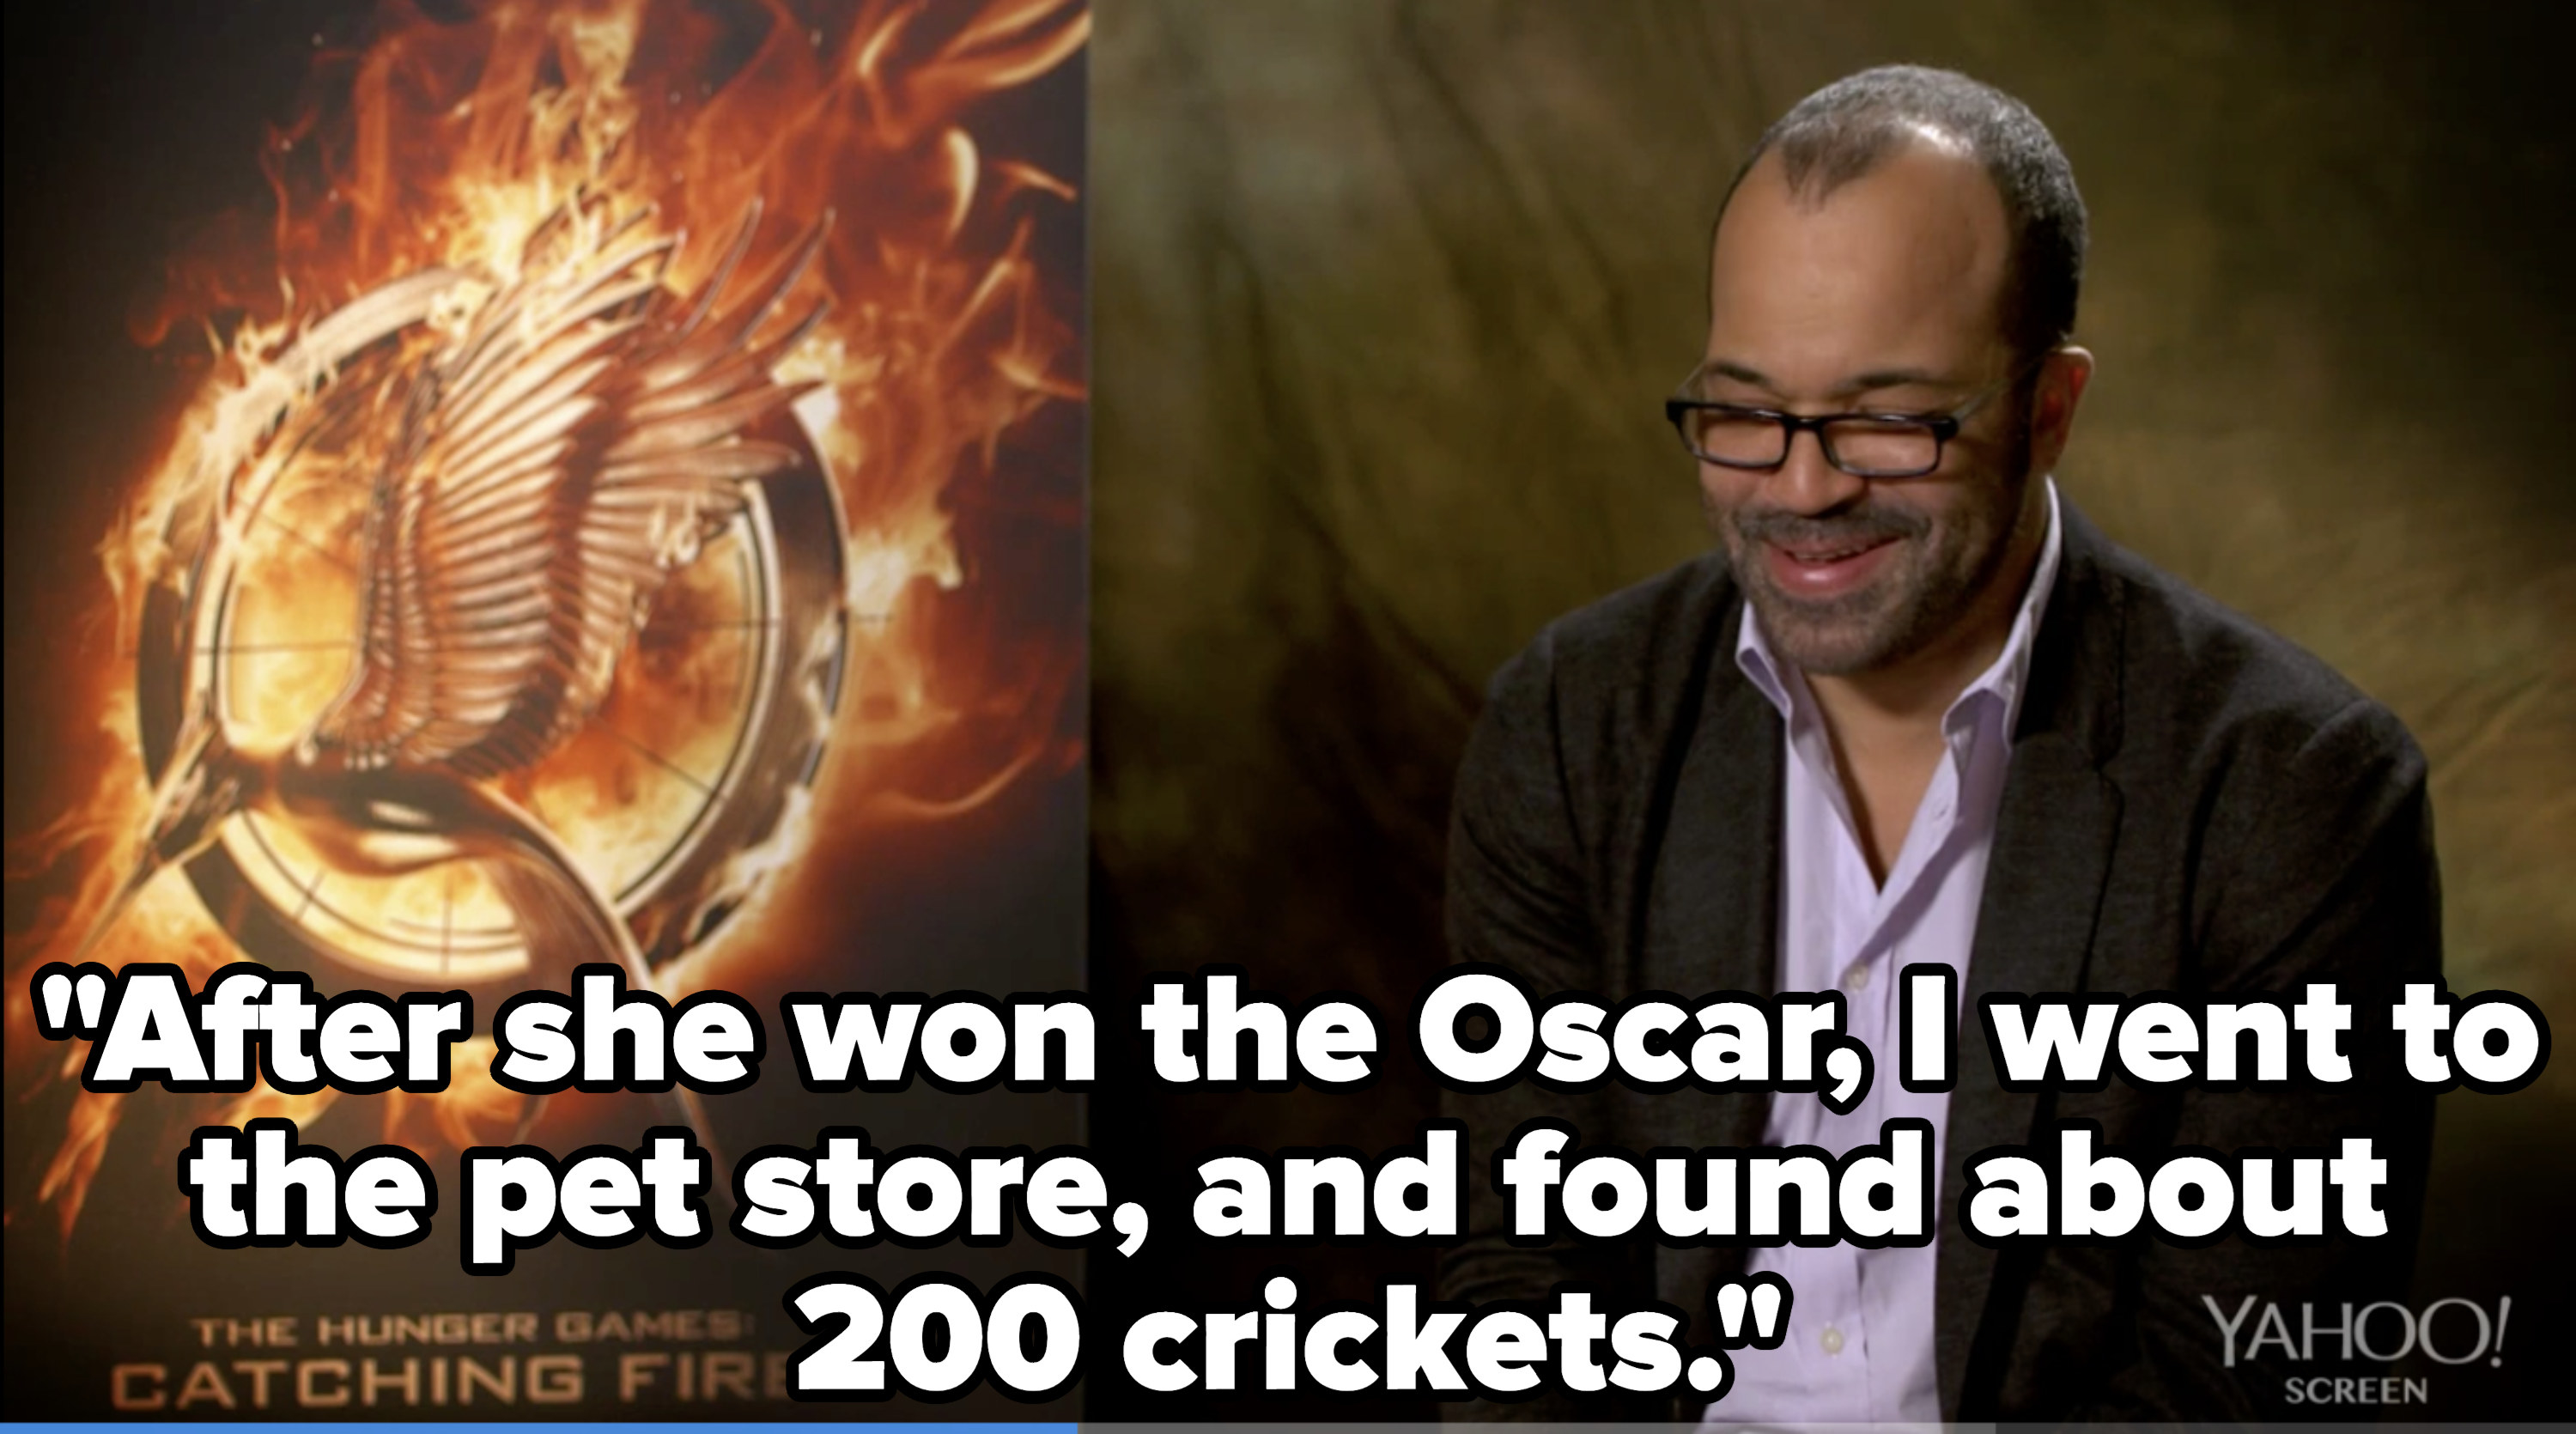 Jeffrey Wright quote: After she won the Oscar, I went to the pet store, and found about 200 crickets